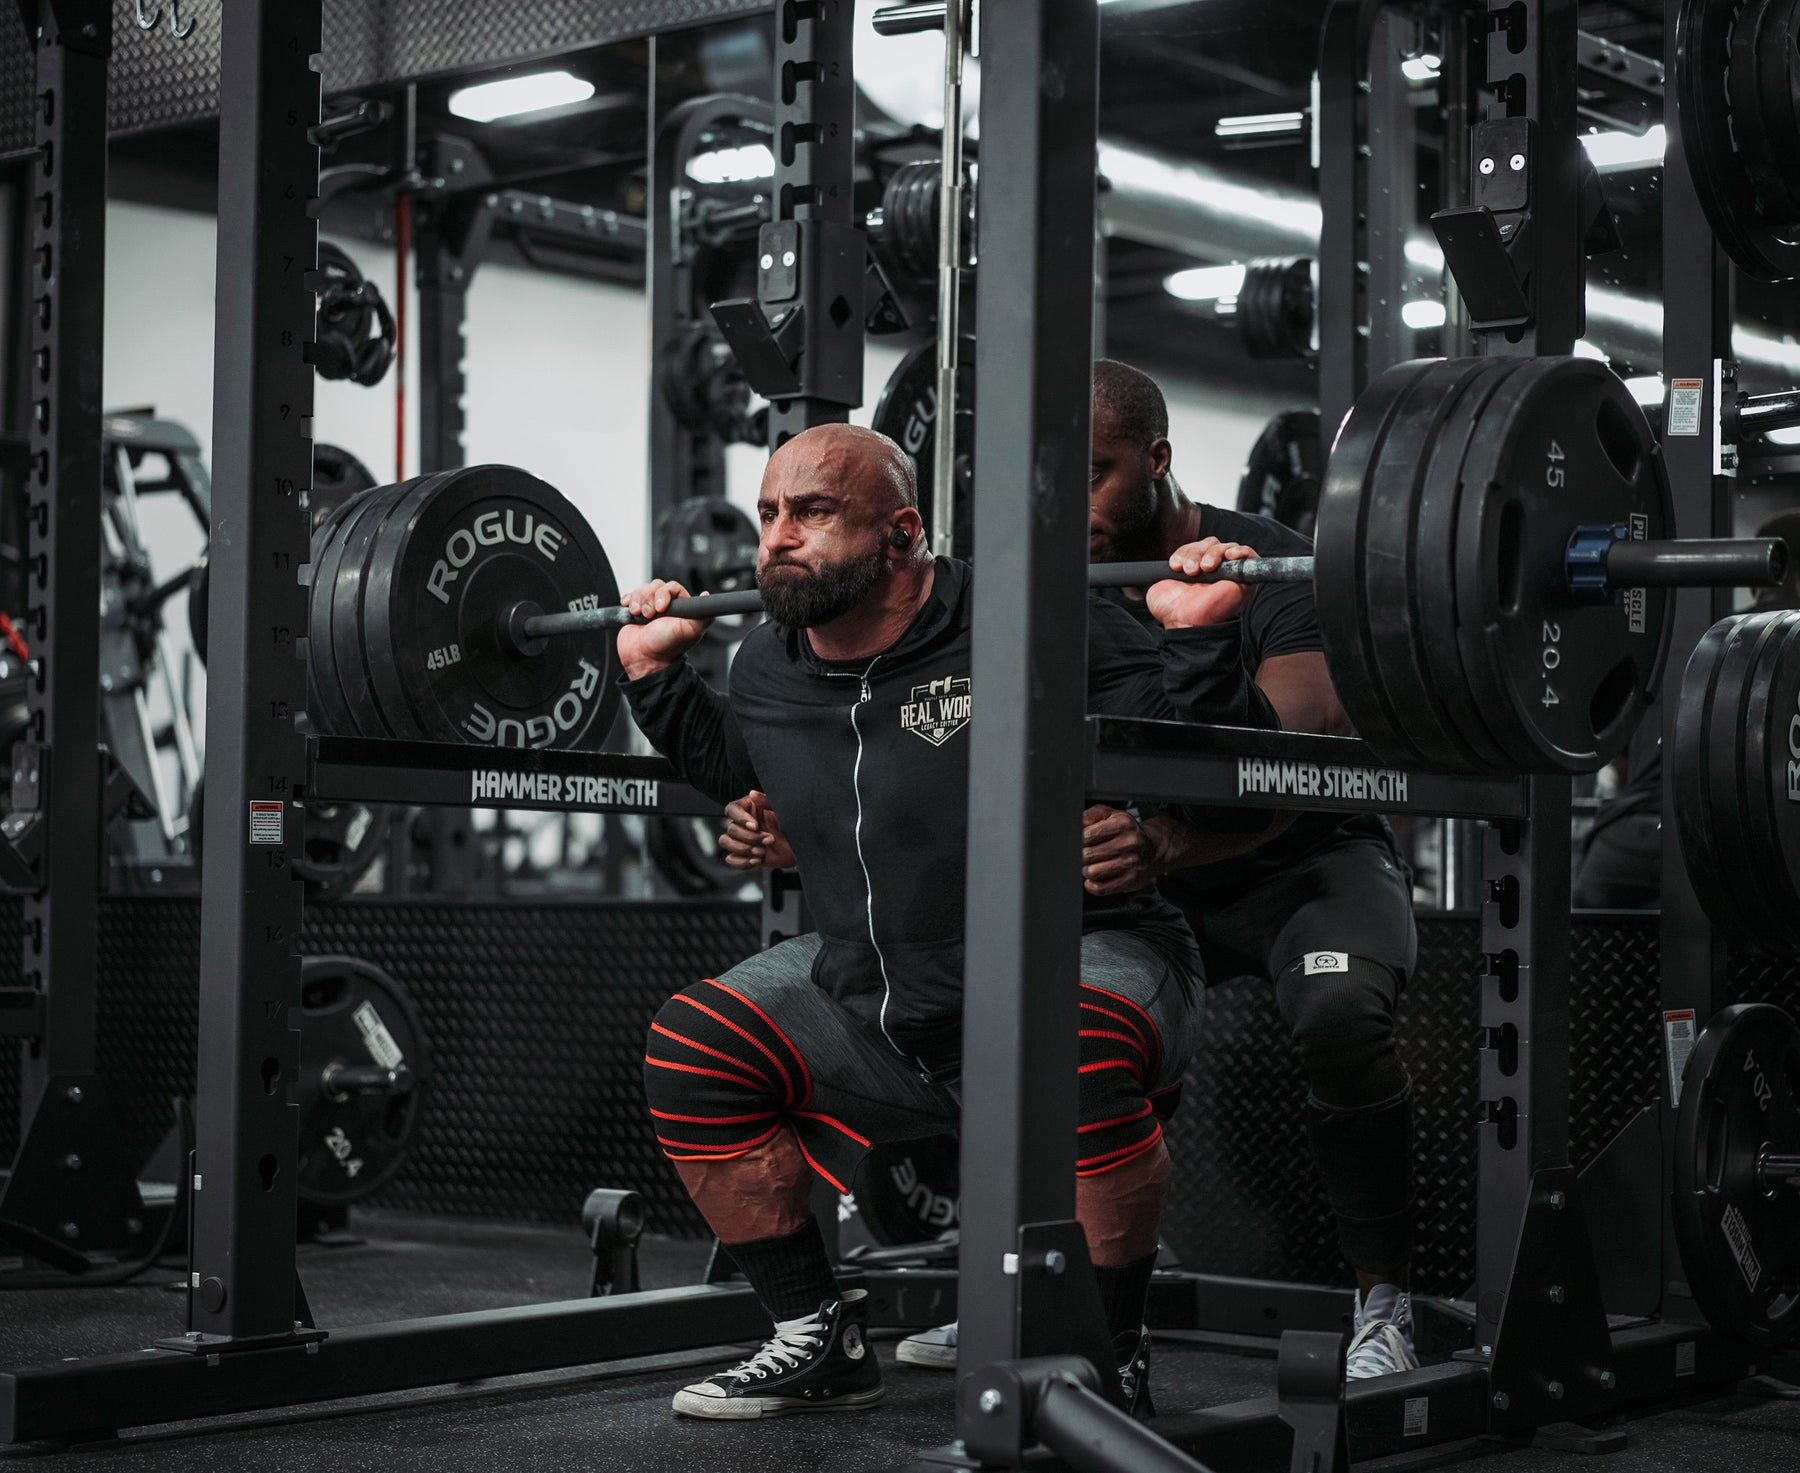 Bodybuilder Fouad Abiad squatting heavy weight in a squat rack